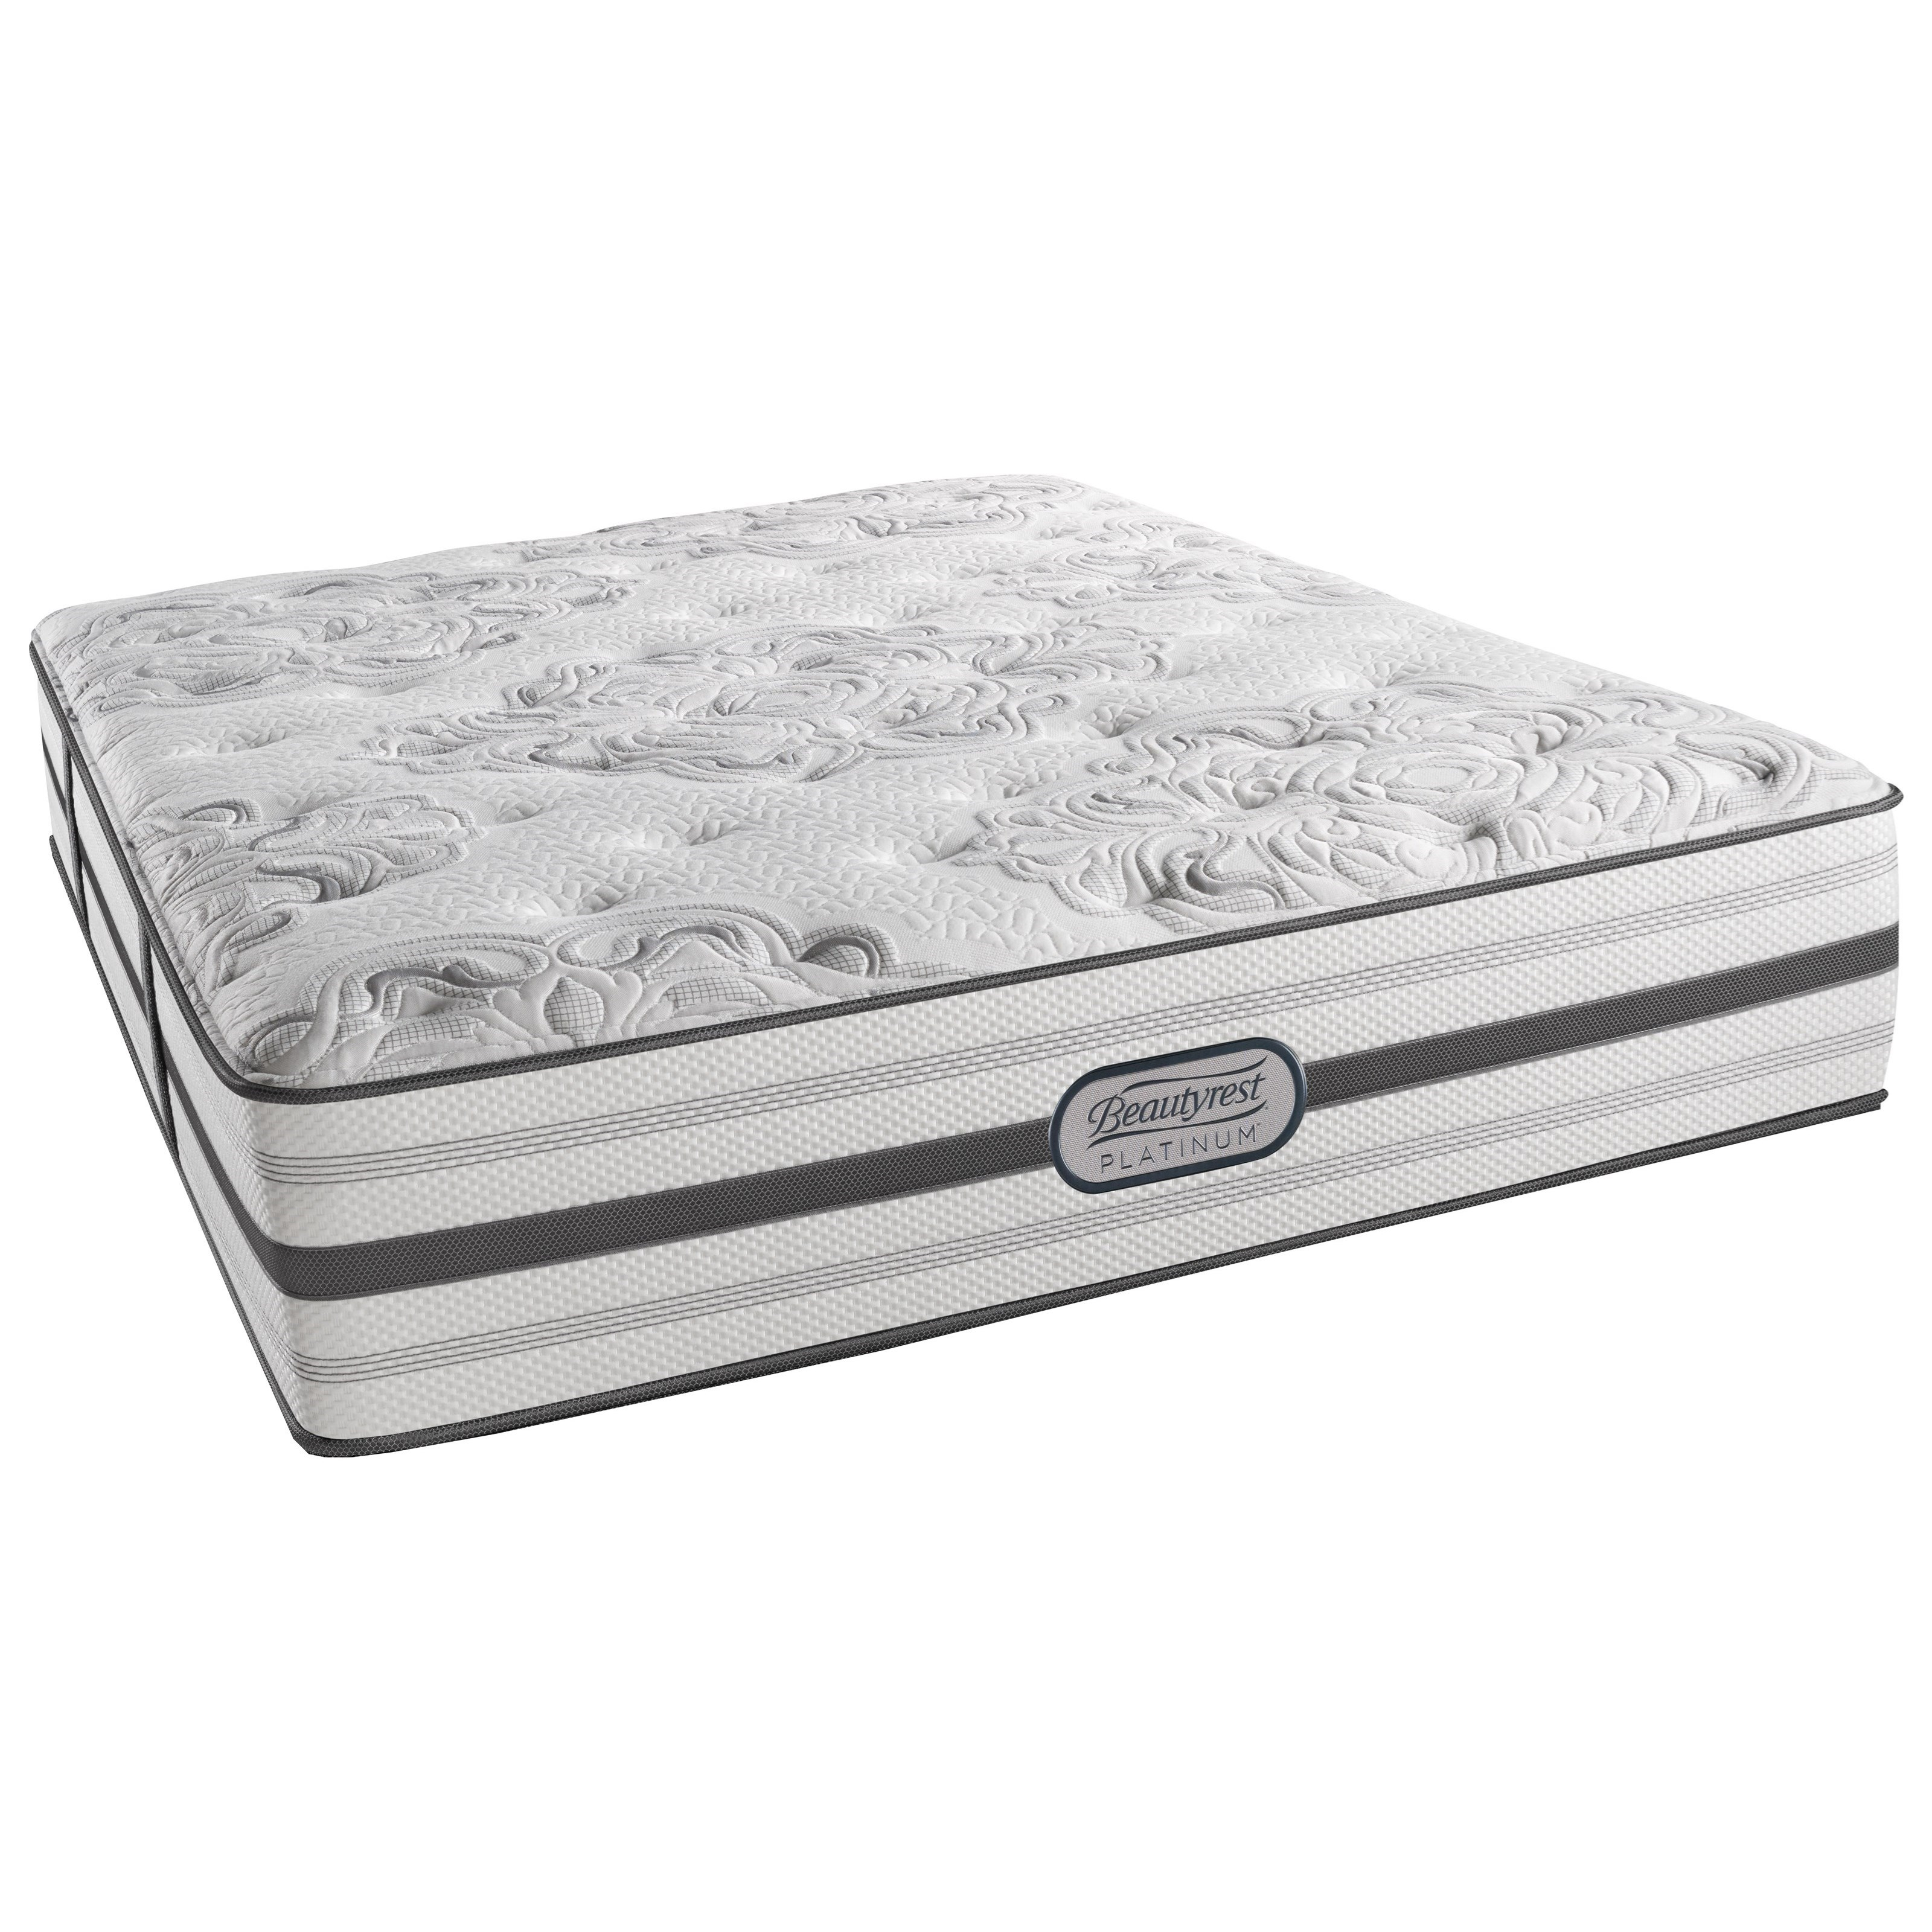 "Beautyrest Platinum Brittany Twin Plush 14.5"" Mattress - Item Number: LV2PL-T"